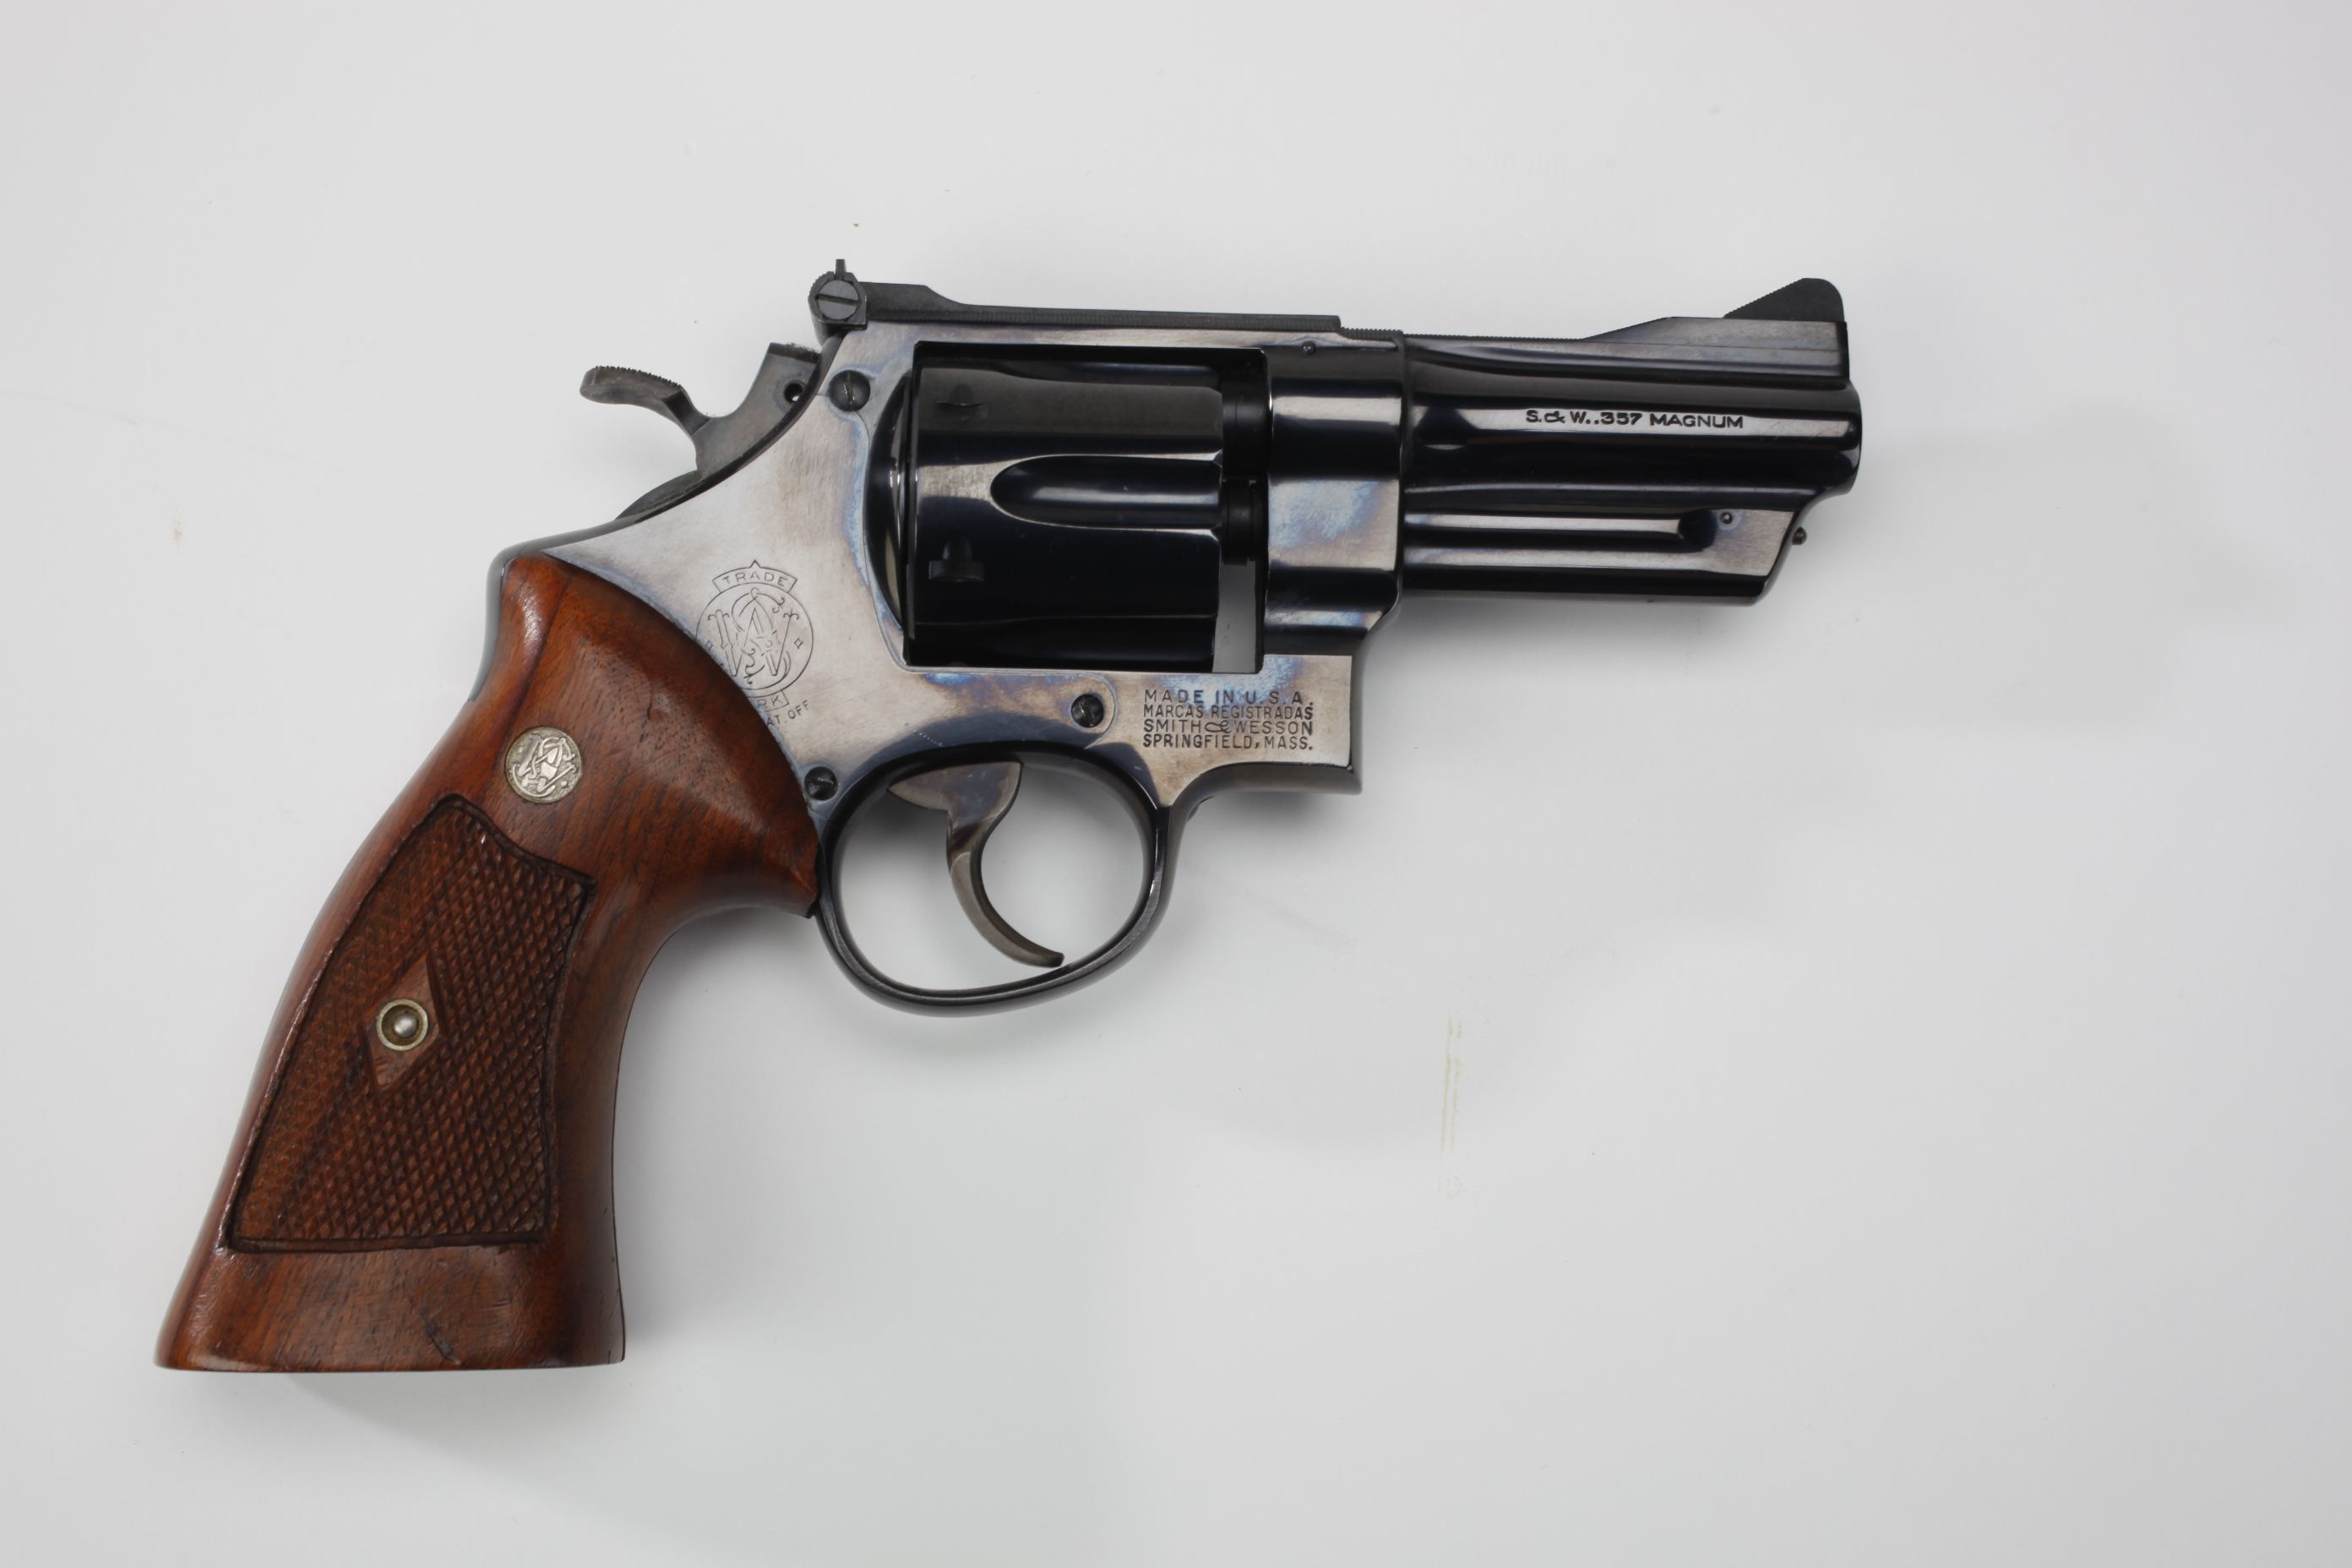 Smith & Wesson Pre Model 27 revolver